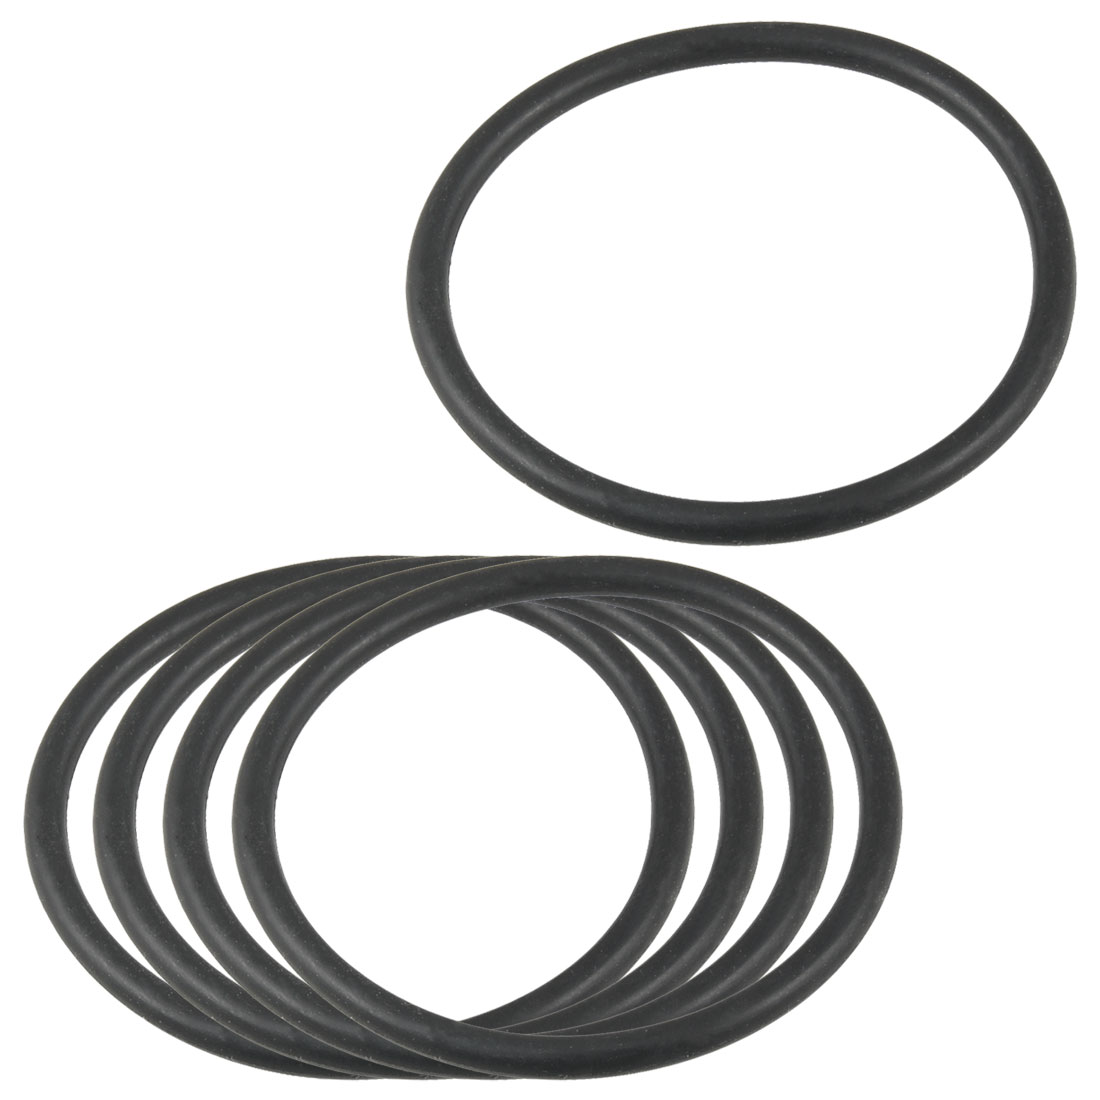 5 Pcs 54mm x 47mm x 3.5mm Flexible Rubber O Ring Seal Washer Black